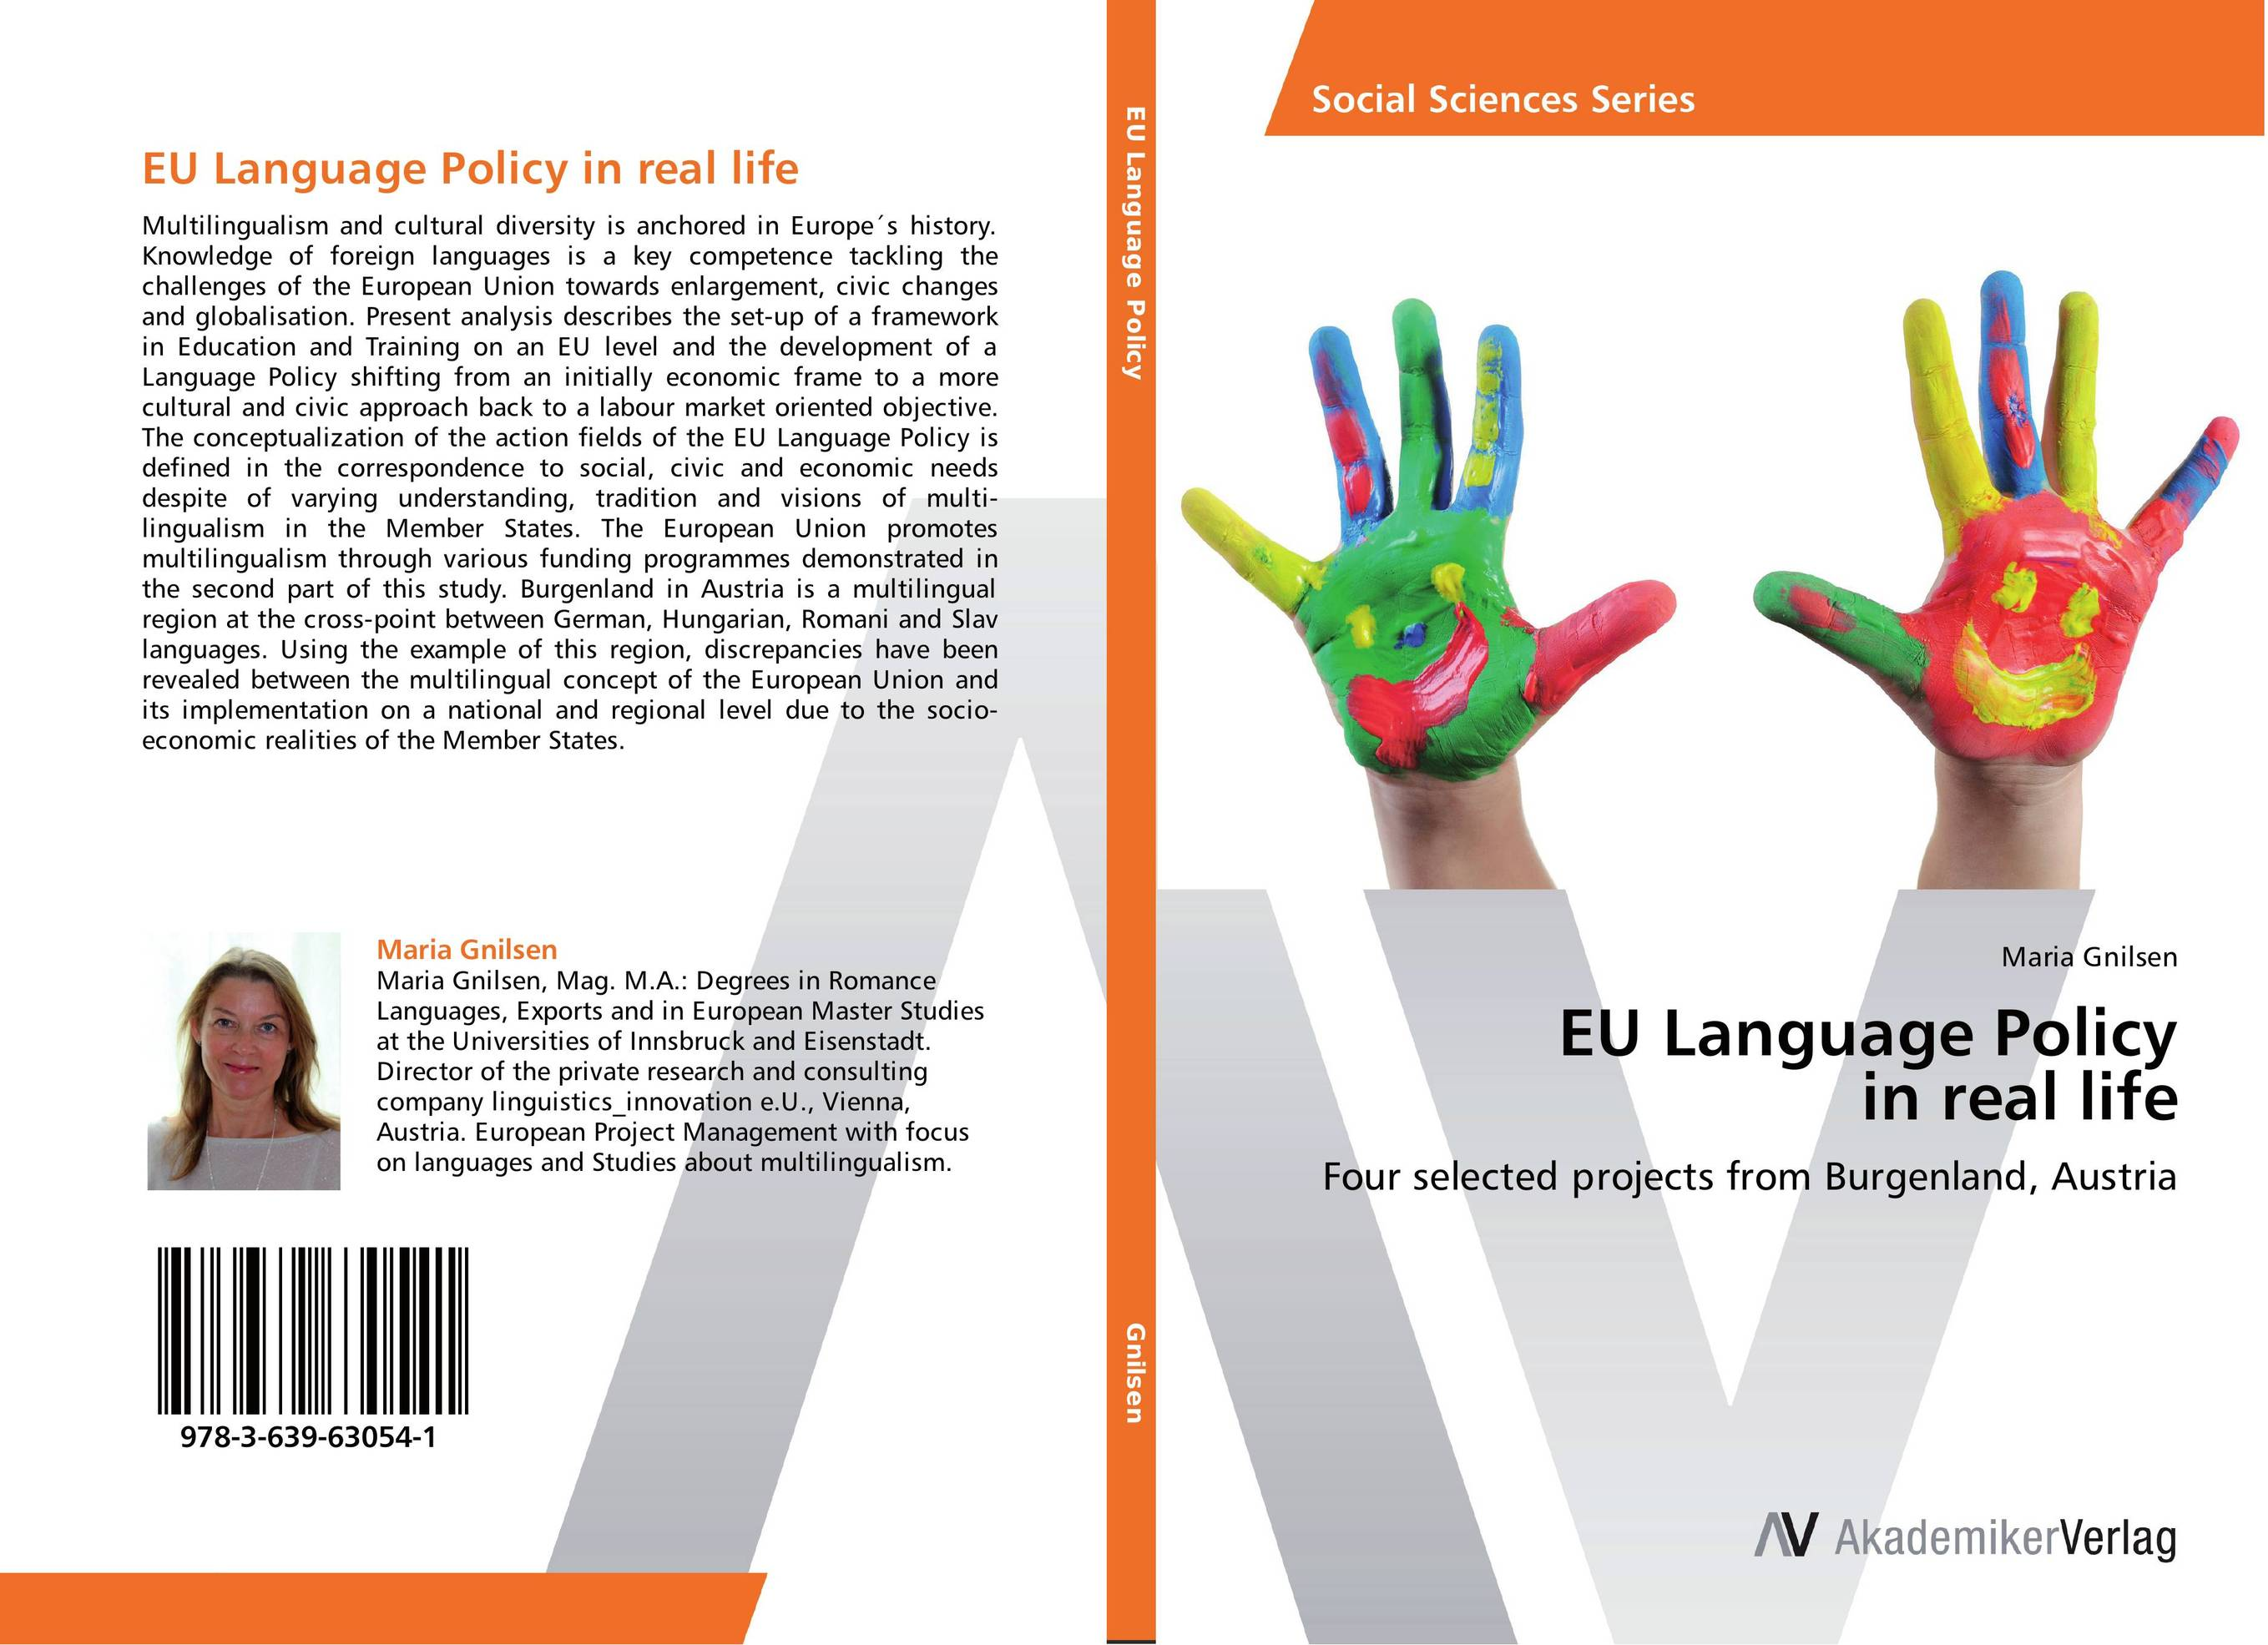 EU Language Policy in real life early signs of language shifting